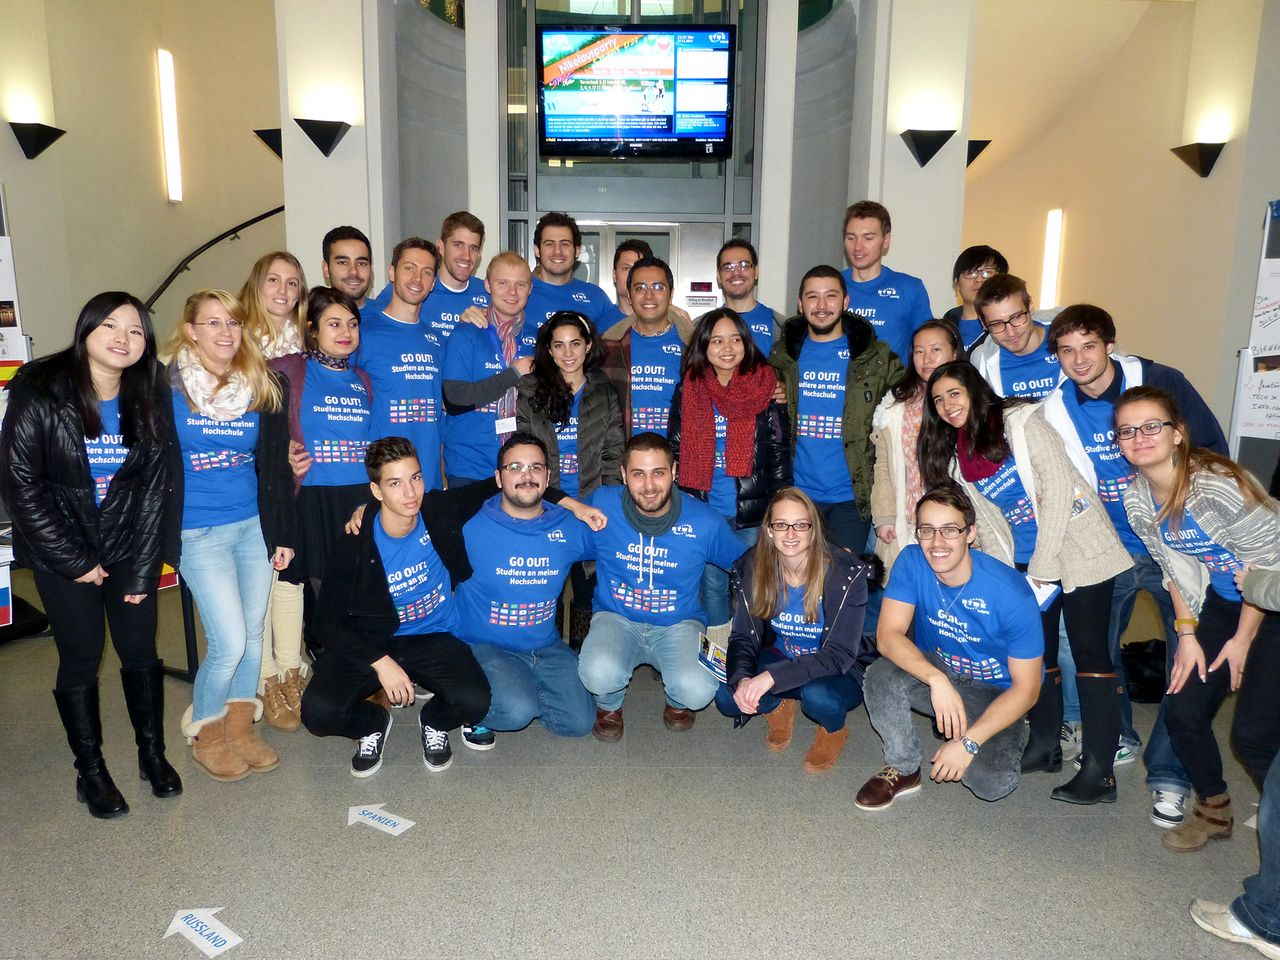 Group picture of incoming students all dressed in blue GO OUT! T-Shirts